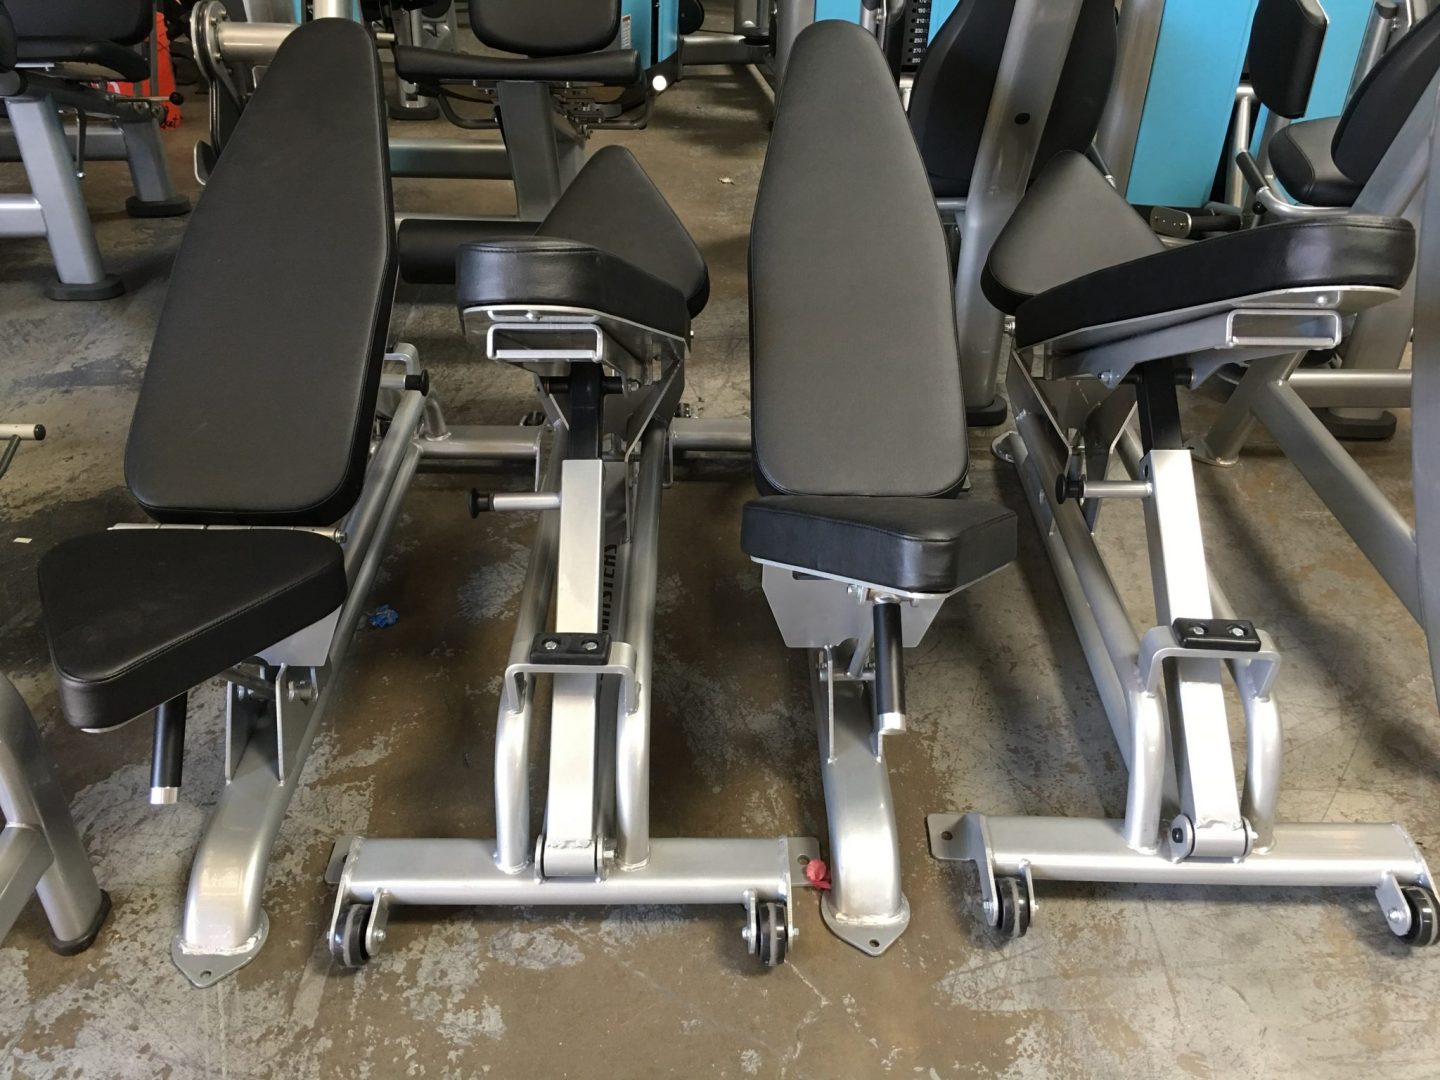 Body Masters Adjustable Incline Bench Refurbished Primo Fitness